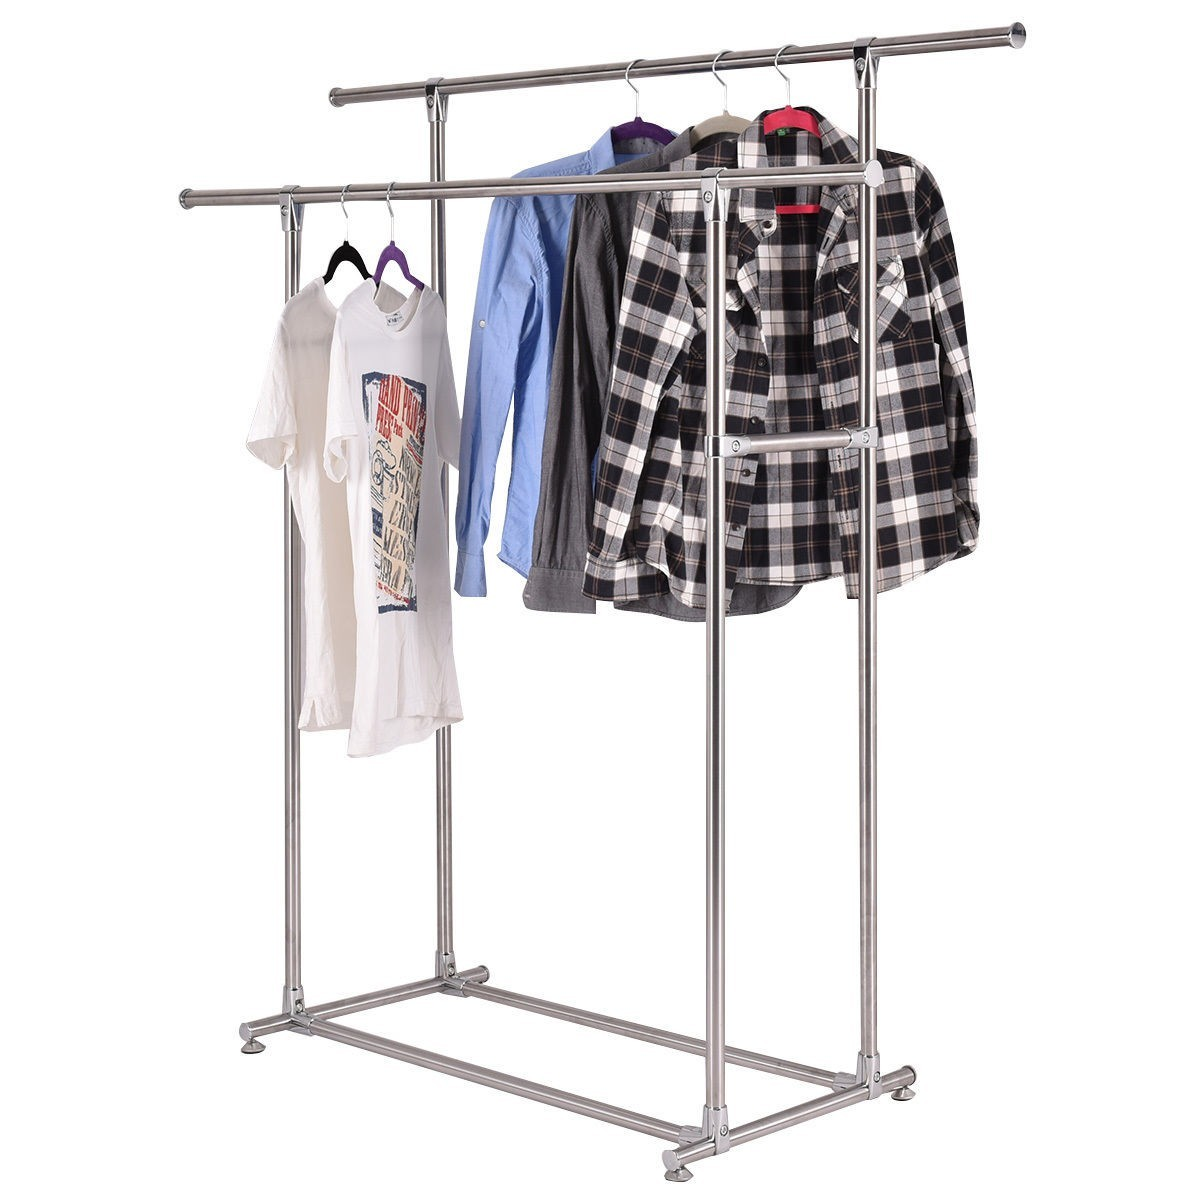 Heavy Duty Stainless Steel Double Rail Garment Rack Clothes Drying Hanger